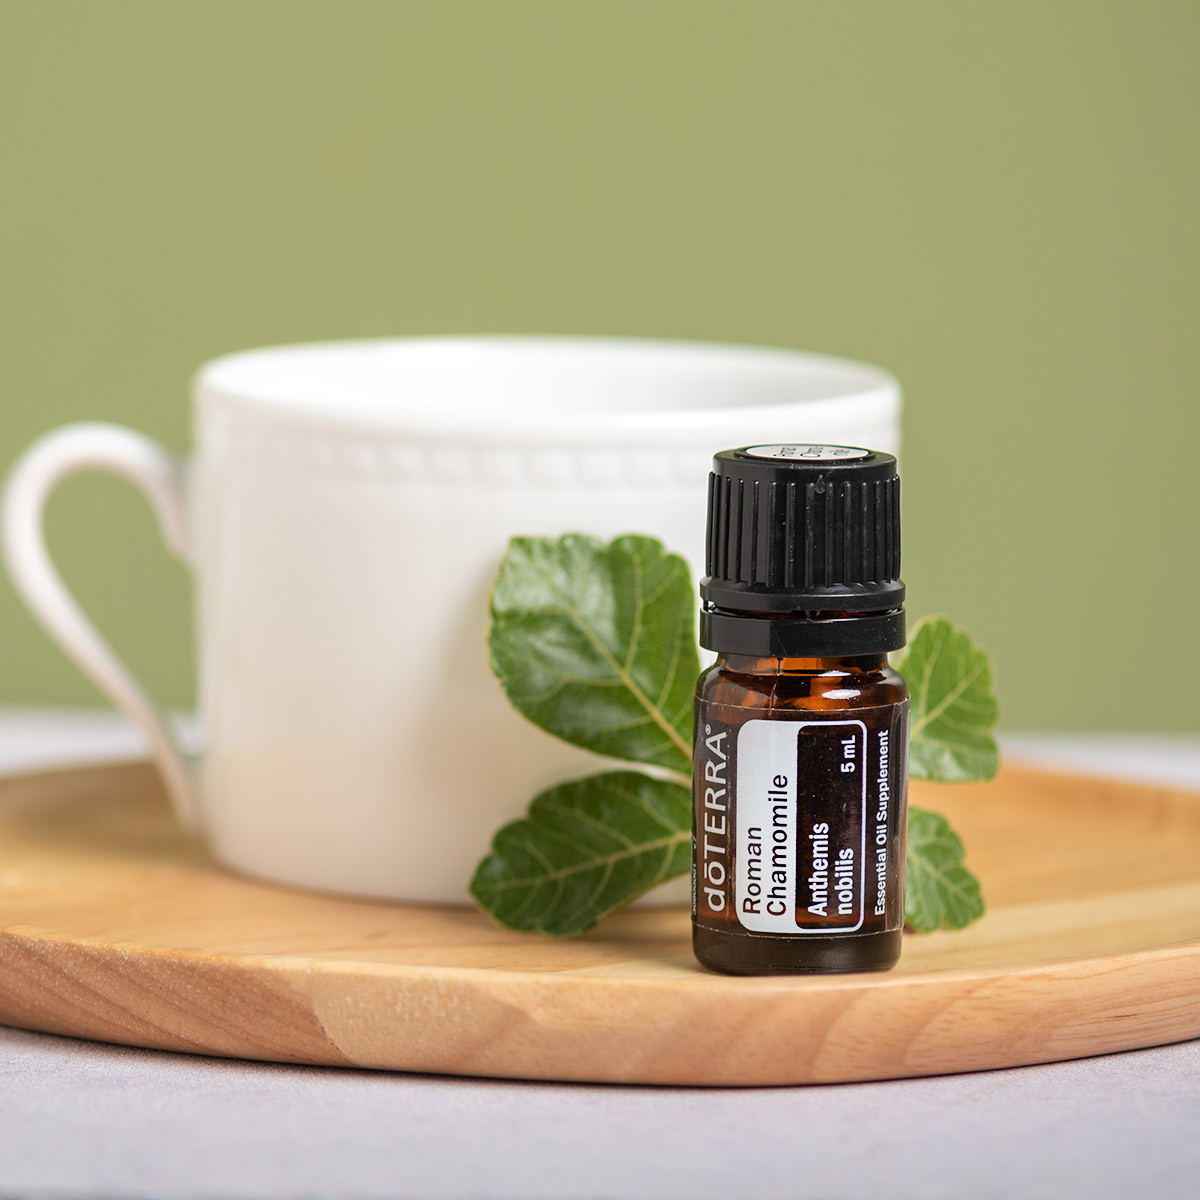 Bottle of Roman Chamomile essential oil next to a white teacup and green leaves. Roman Chamomile oil